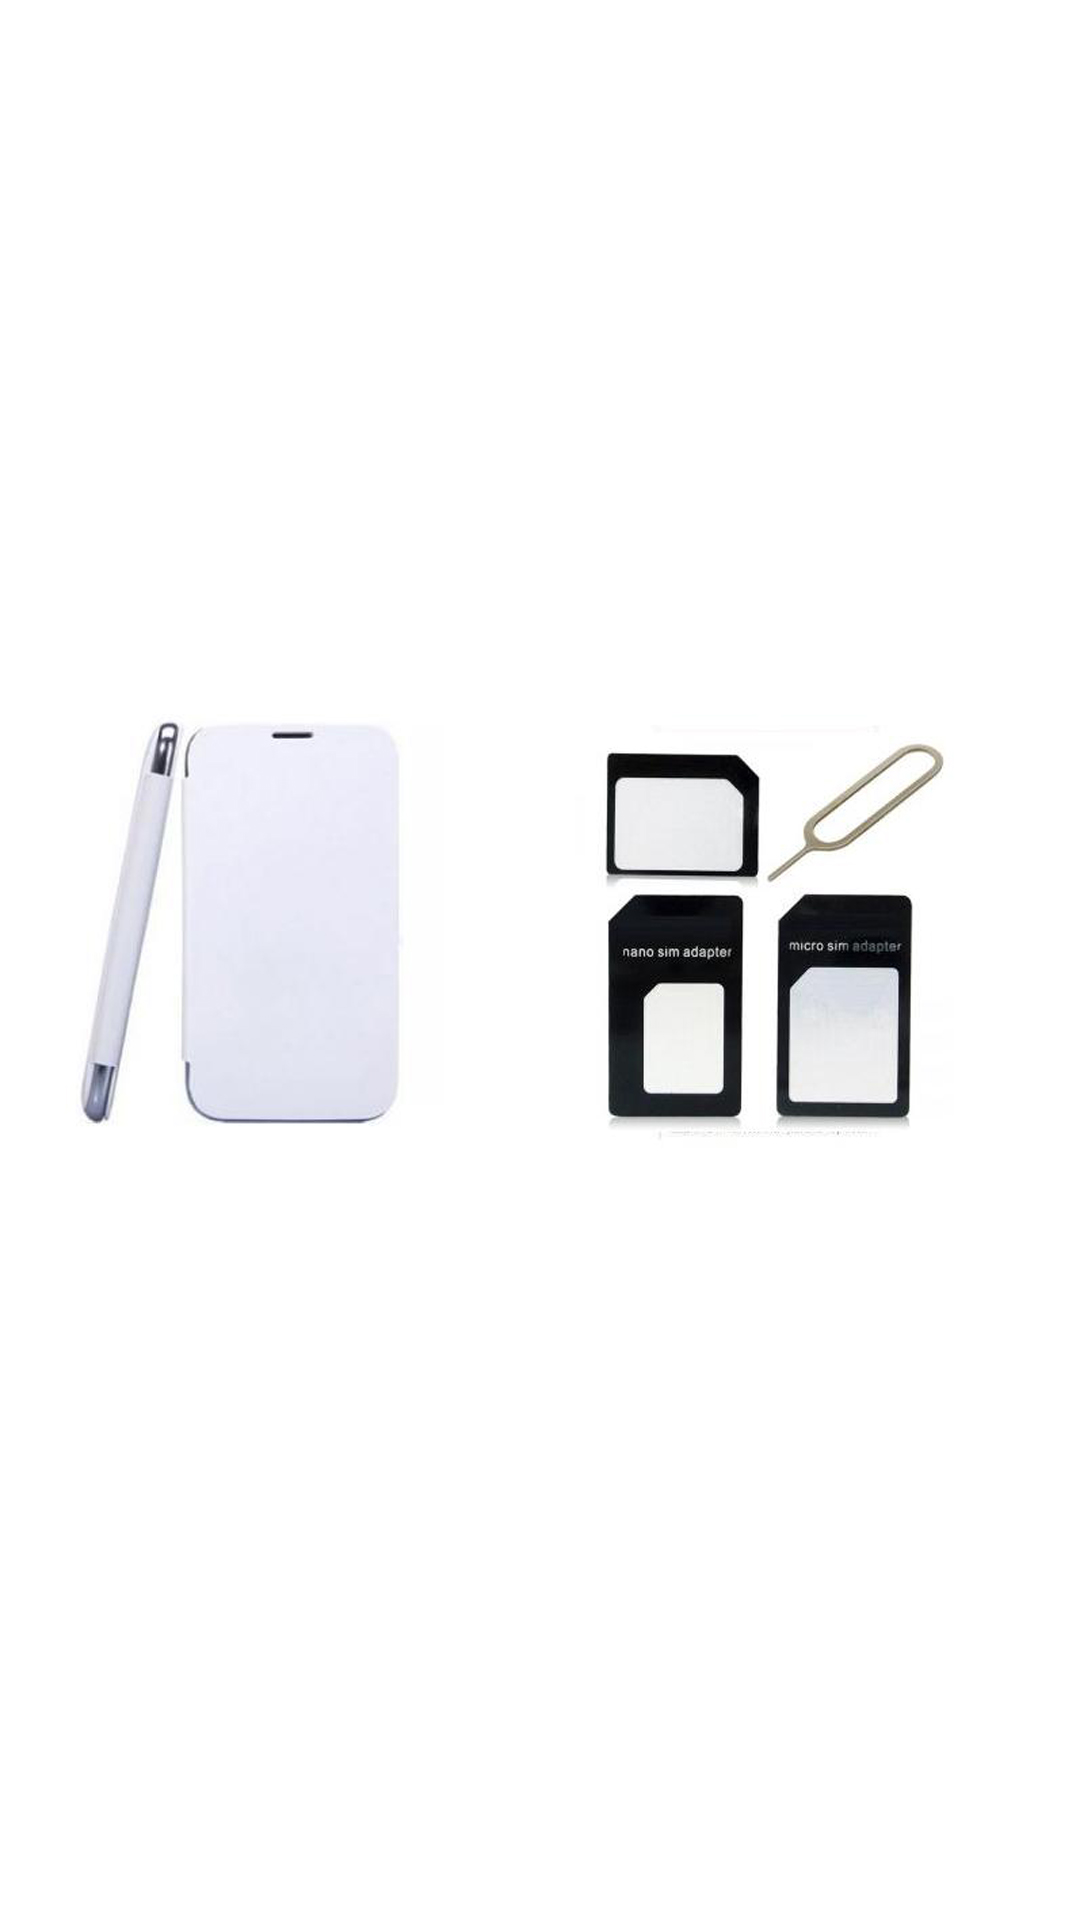 Ks Flip Cover and Sim Adaptor Kit of Samsung Galaxy Note 2 N7100  White  available at Paytm for Rs.999999999